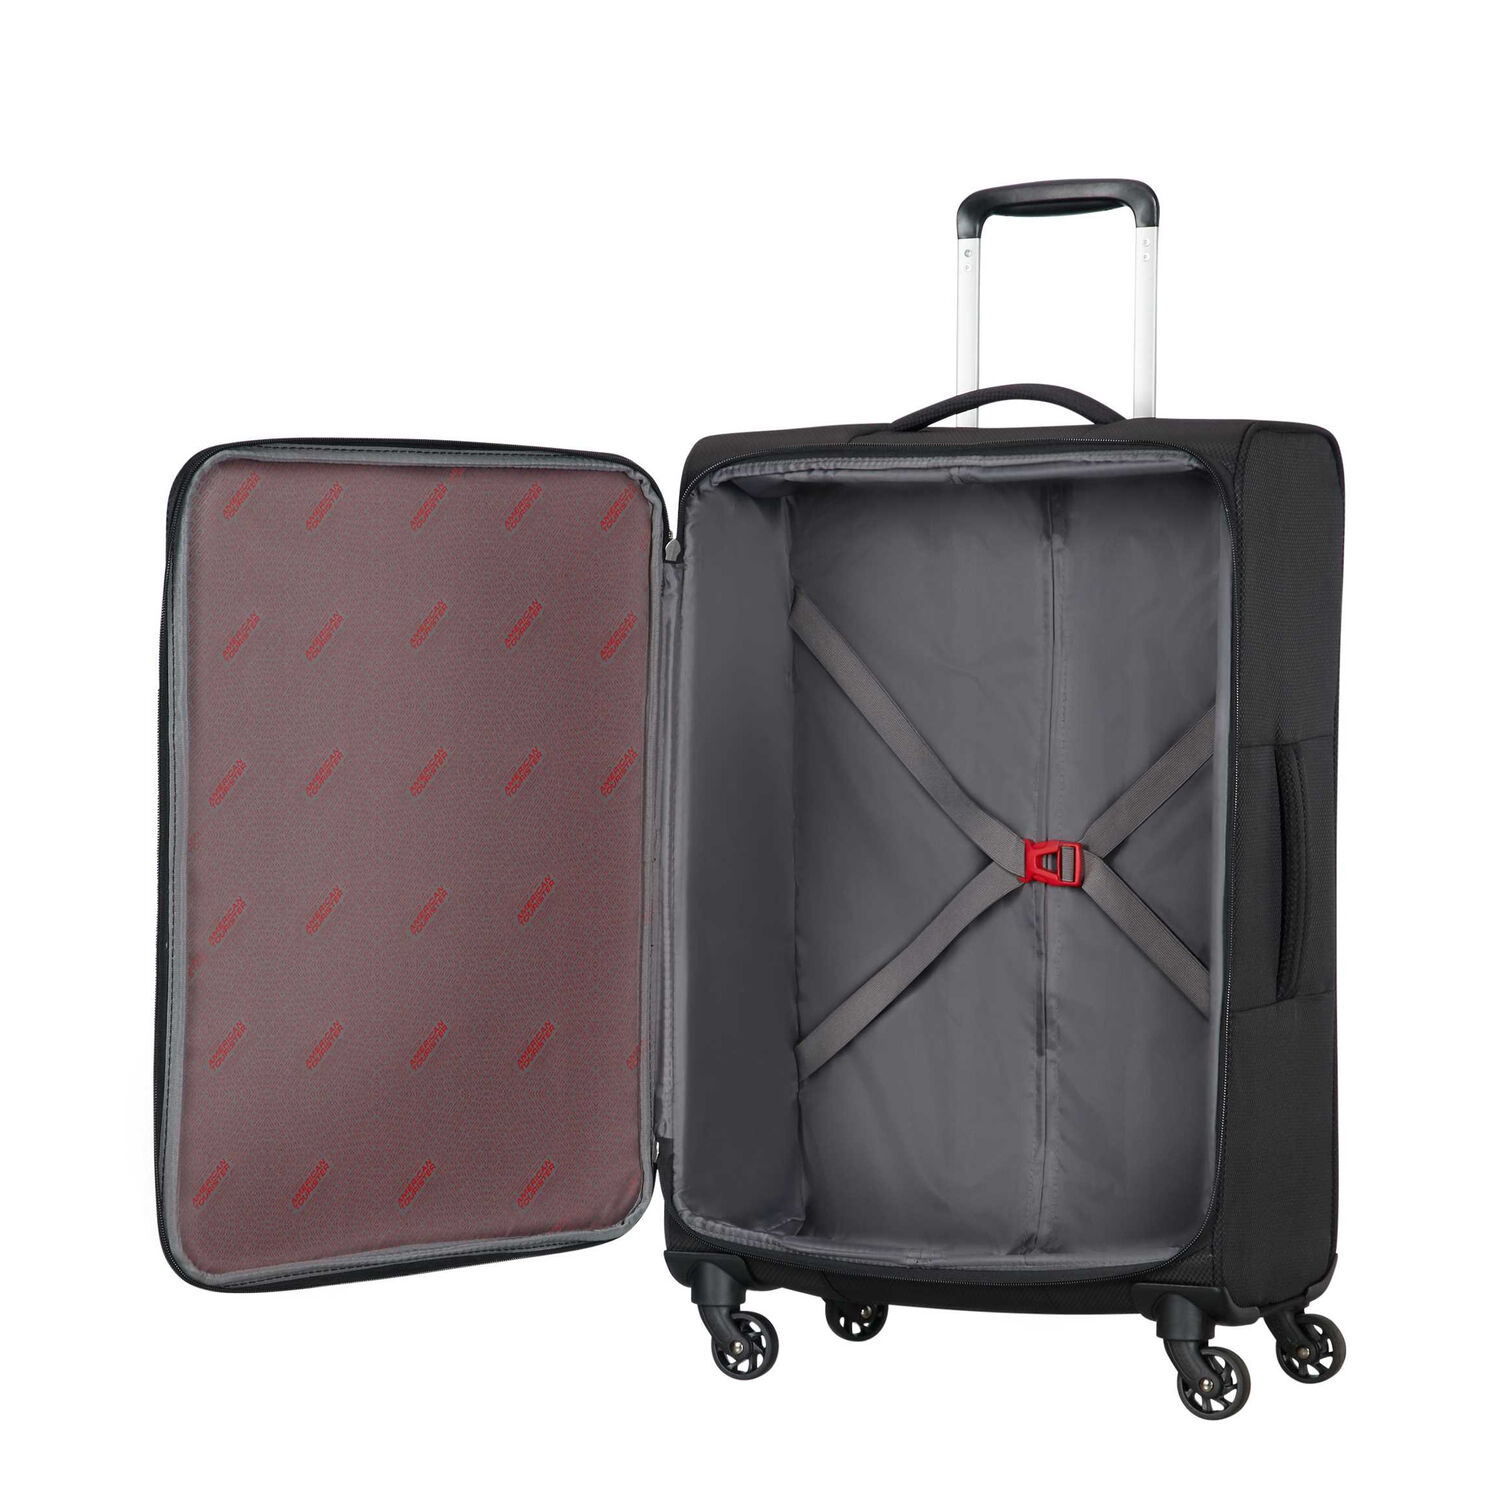 0ebf2c9fe5 American Tourister Litewing Spinner Large in the color Volcanic Black.